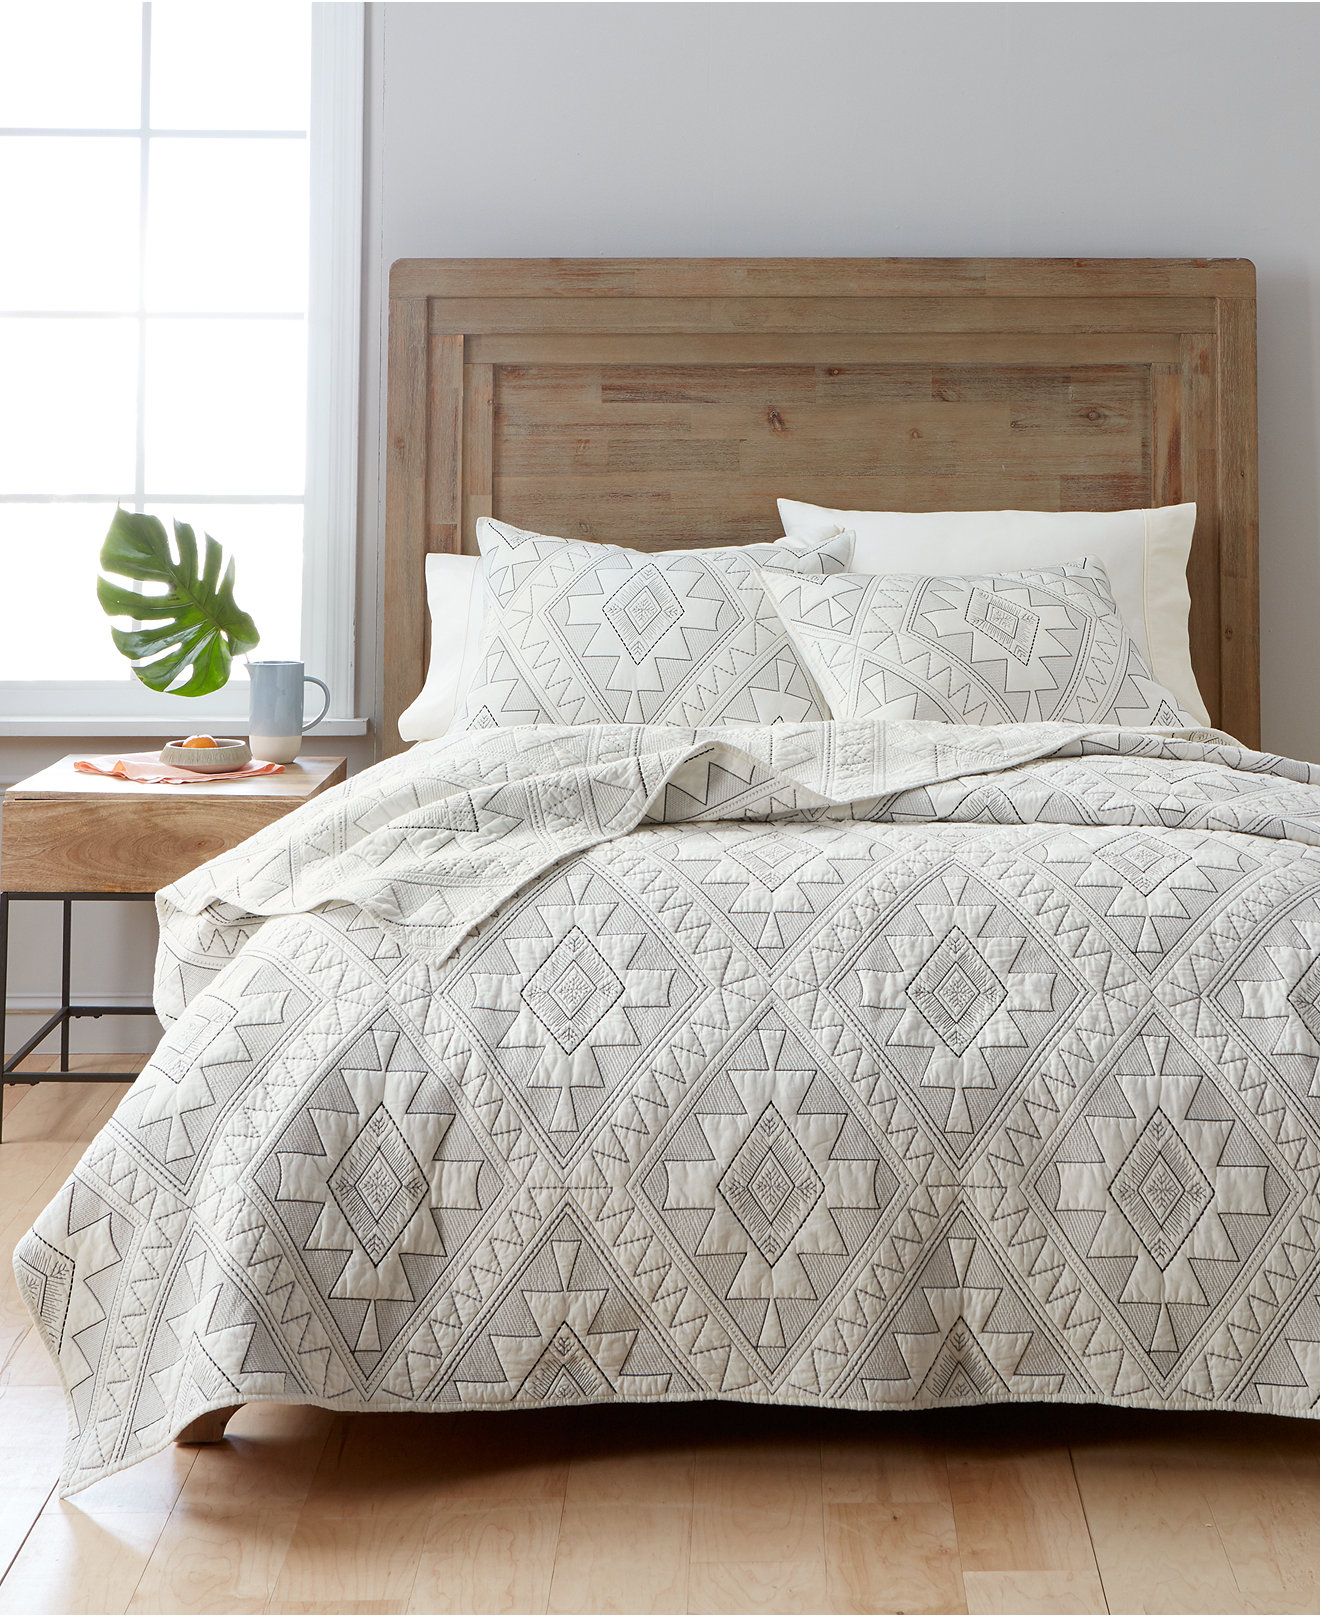 quilts and bedspreads  macy's - martha stewart collection canyonlands cotton embroidered quilt and shamcollection created for macy's